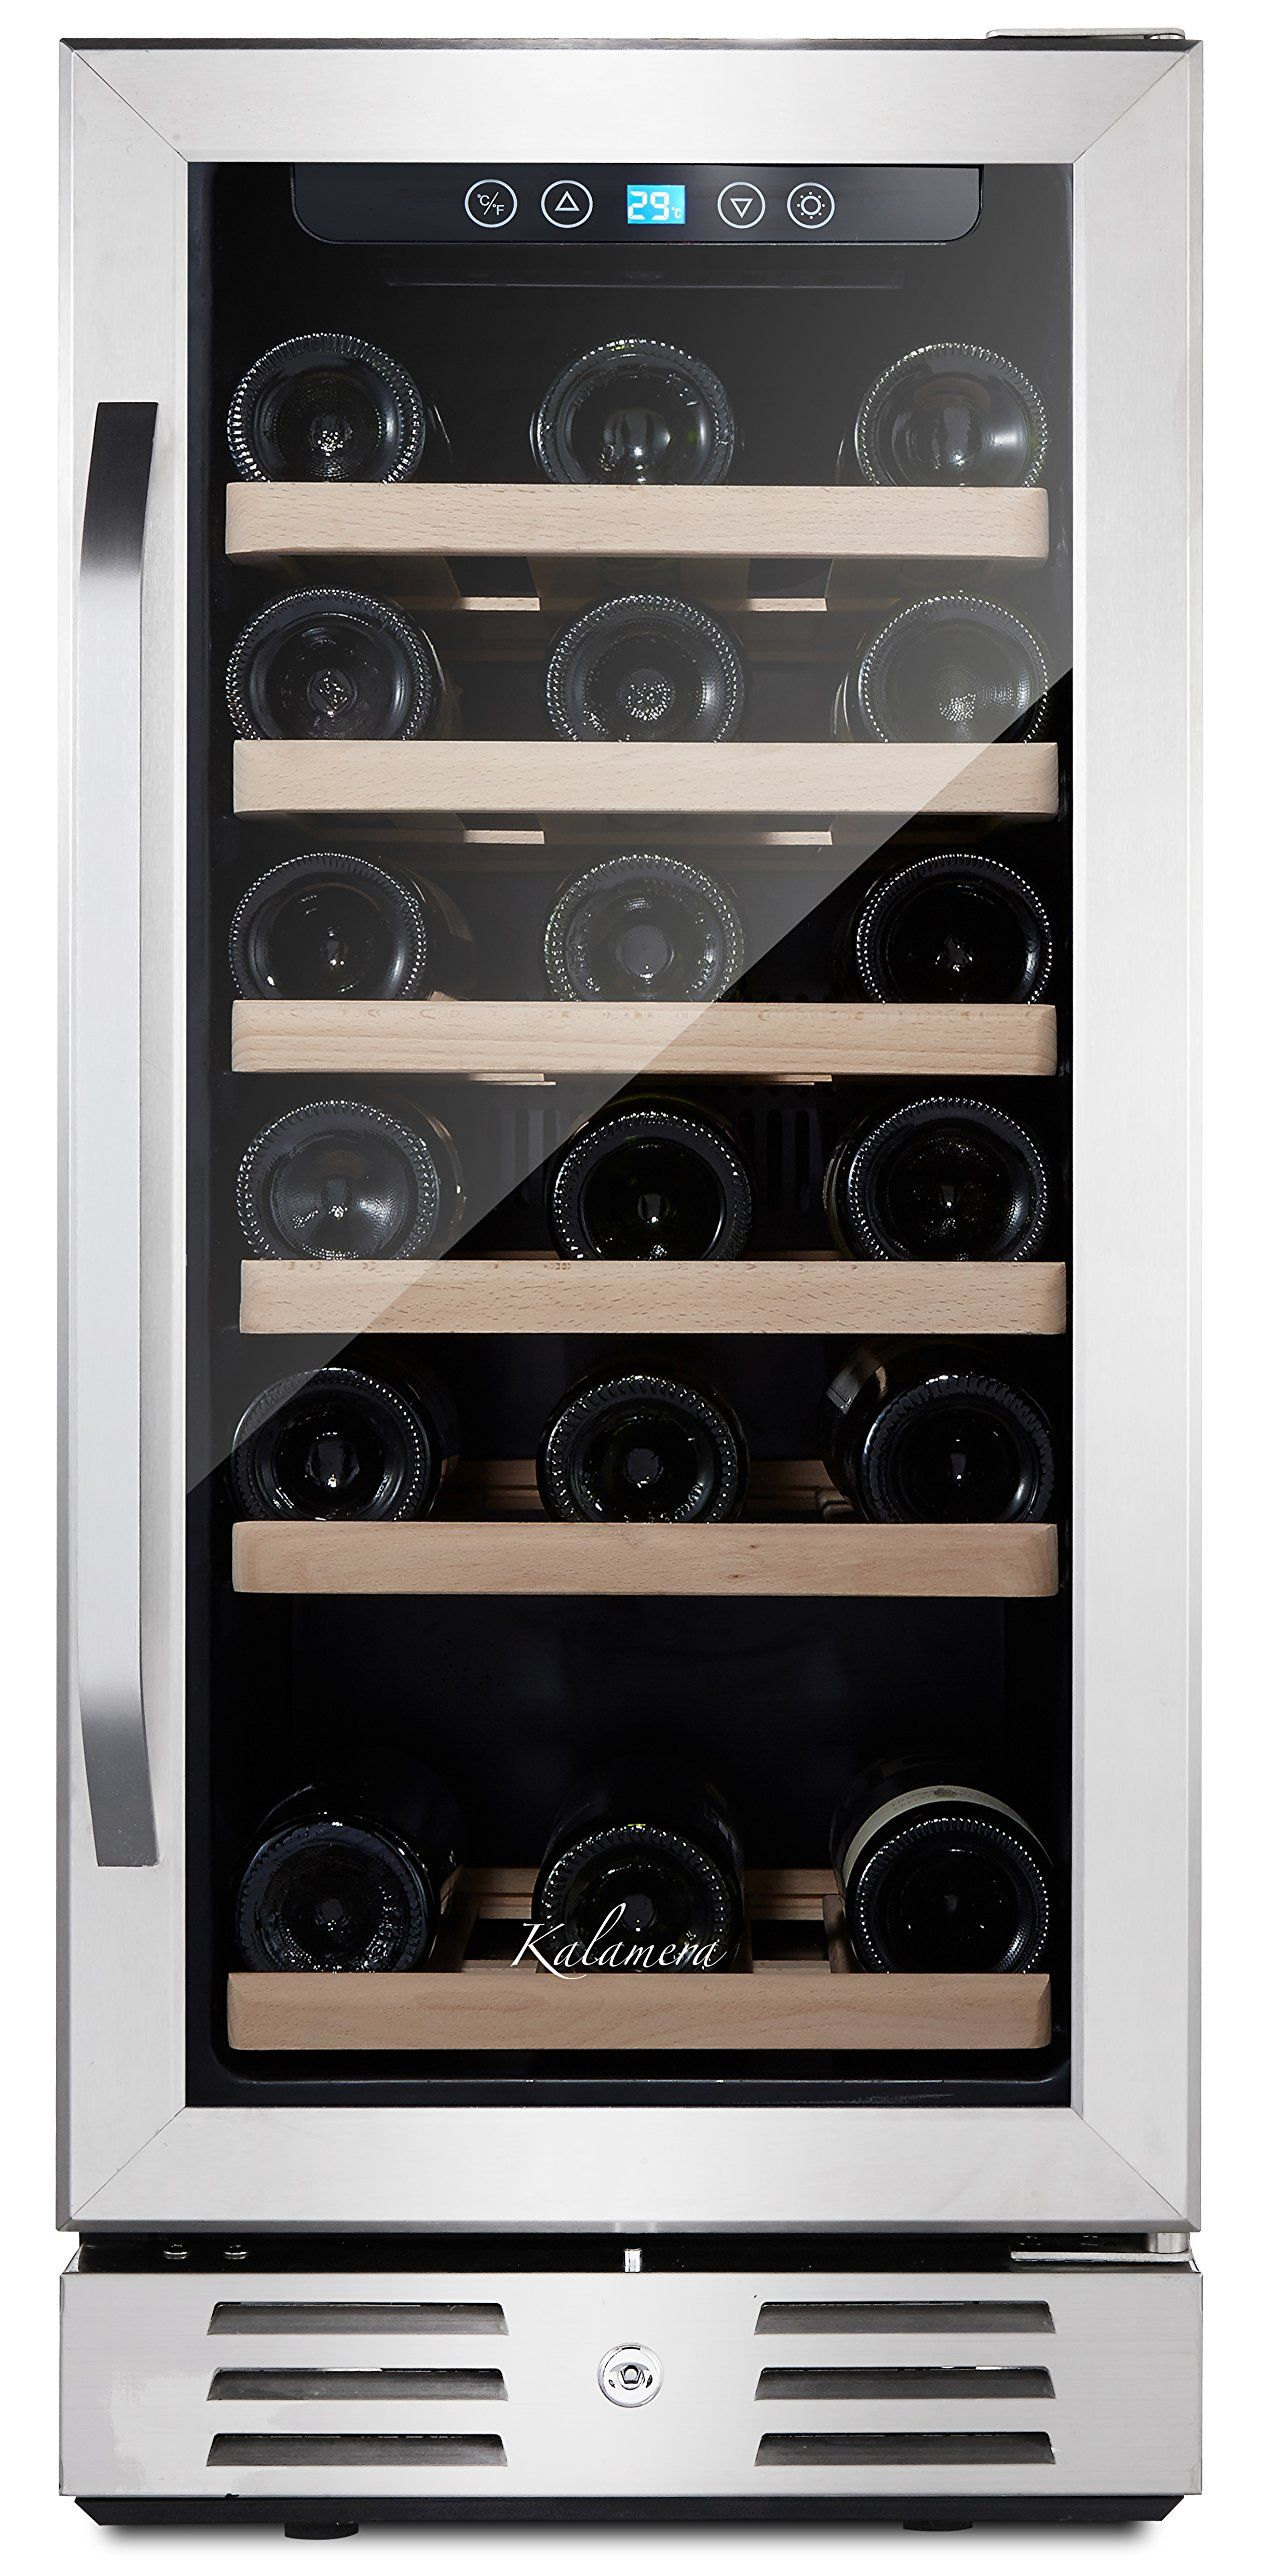 Amazon Com Kalamera 15 Wine Refrigerator 30 Bottle Built In Single Zone With Touch Control With Images Wine Refrigerator Built In Wine Refrigerator Built In Wine Cooler